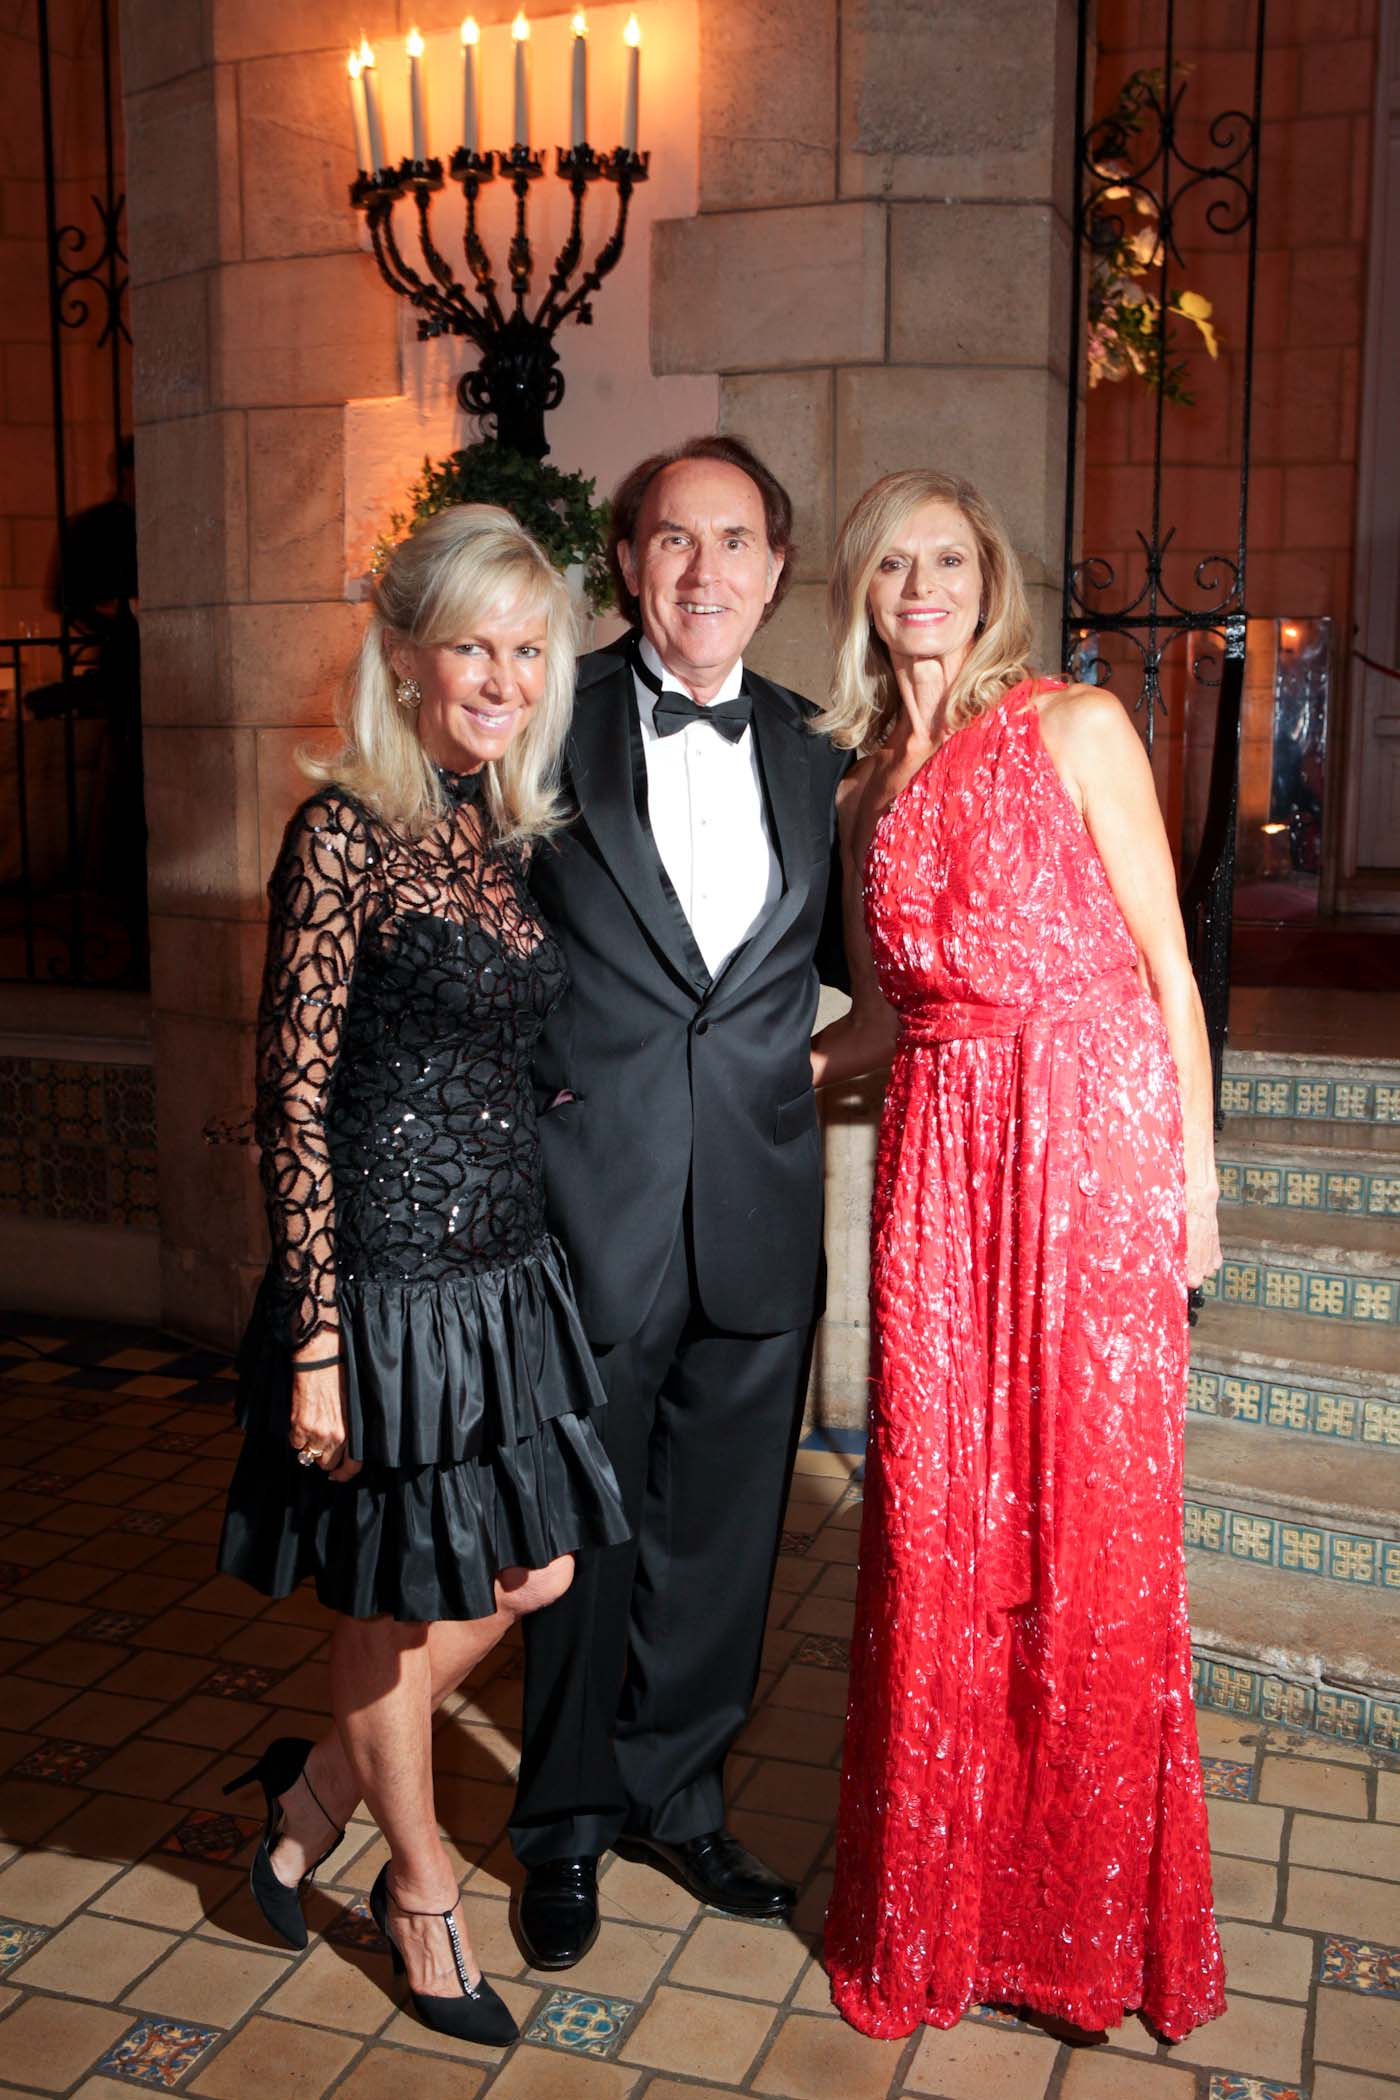 Denise and Daniel Hanley with Inge Anderson